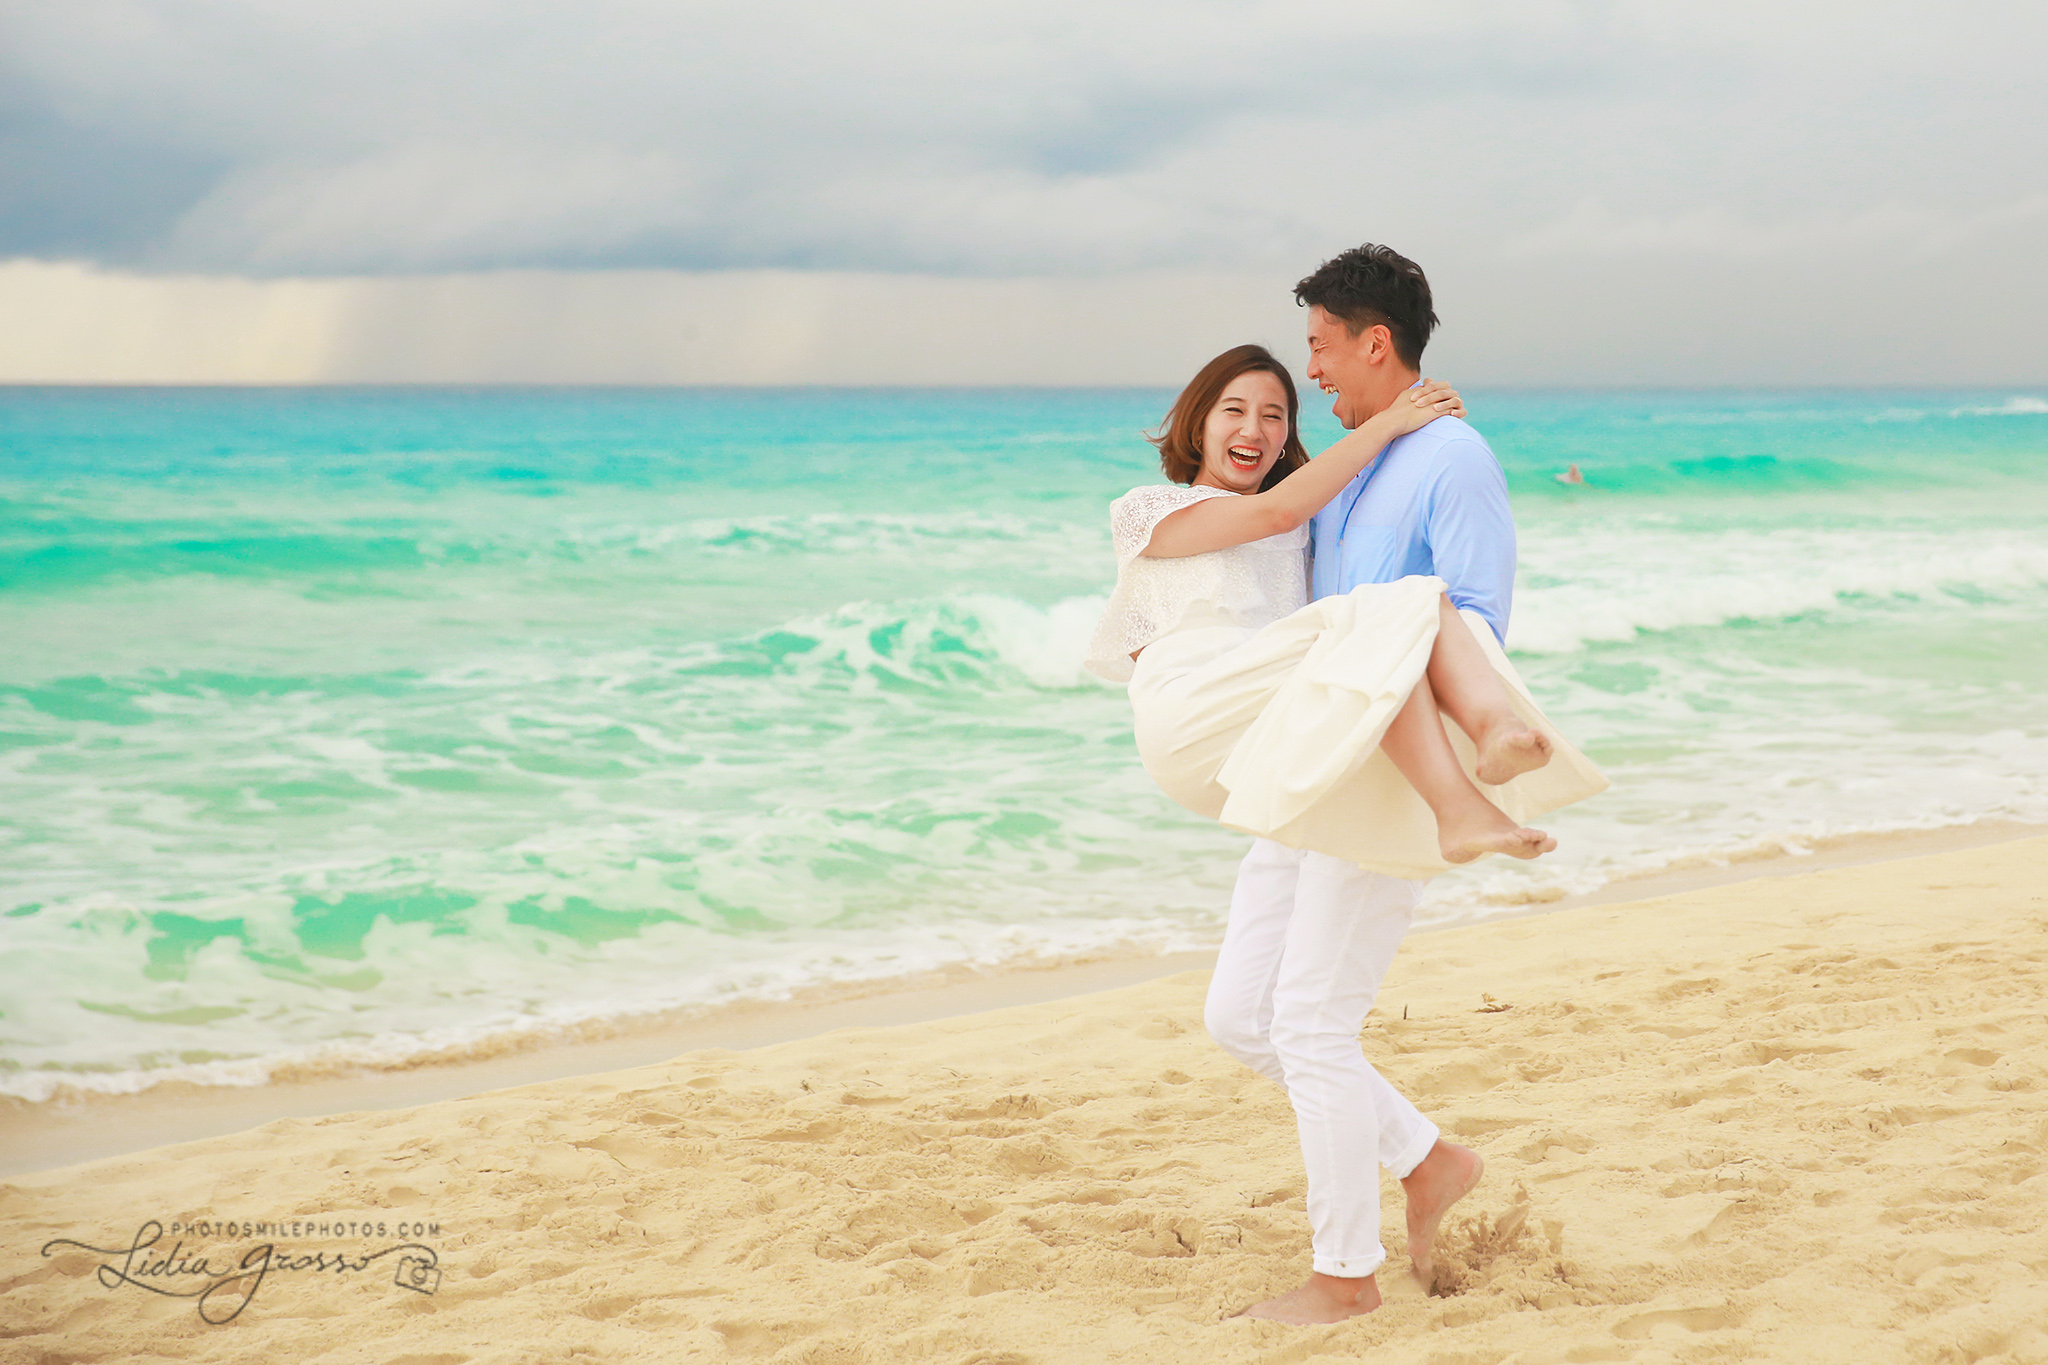 Playa Delfines Cancun couples portraits, Beach photography Cancun, Japanese couples Potraits Cancun, honeymoon photos Cancun, Cancun Photographer, His agencia de viajes cancun photographer